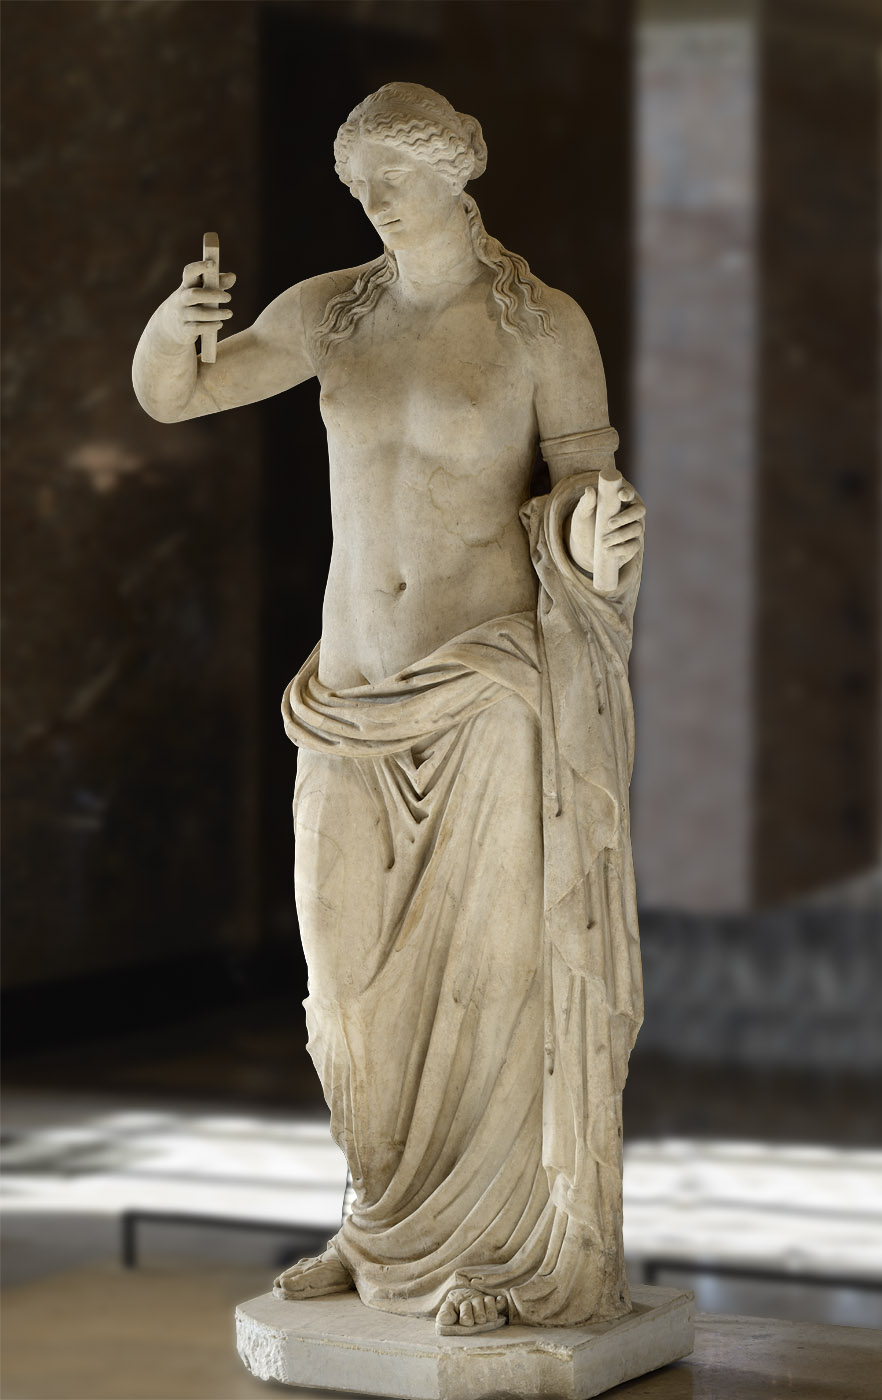 Venus of Arles. Marble from the mount Hymette. Roman work of the late 1st cent. BCE after a work by Praxiteles.  Inv. No. MR 365 / Ma 439. Paris, Louvre Museum